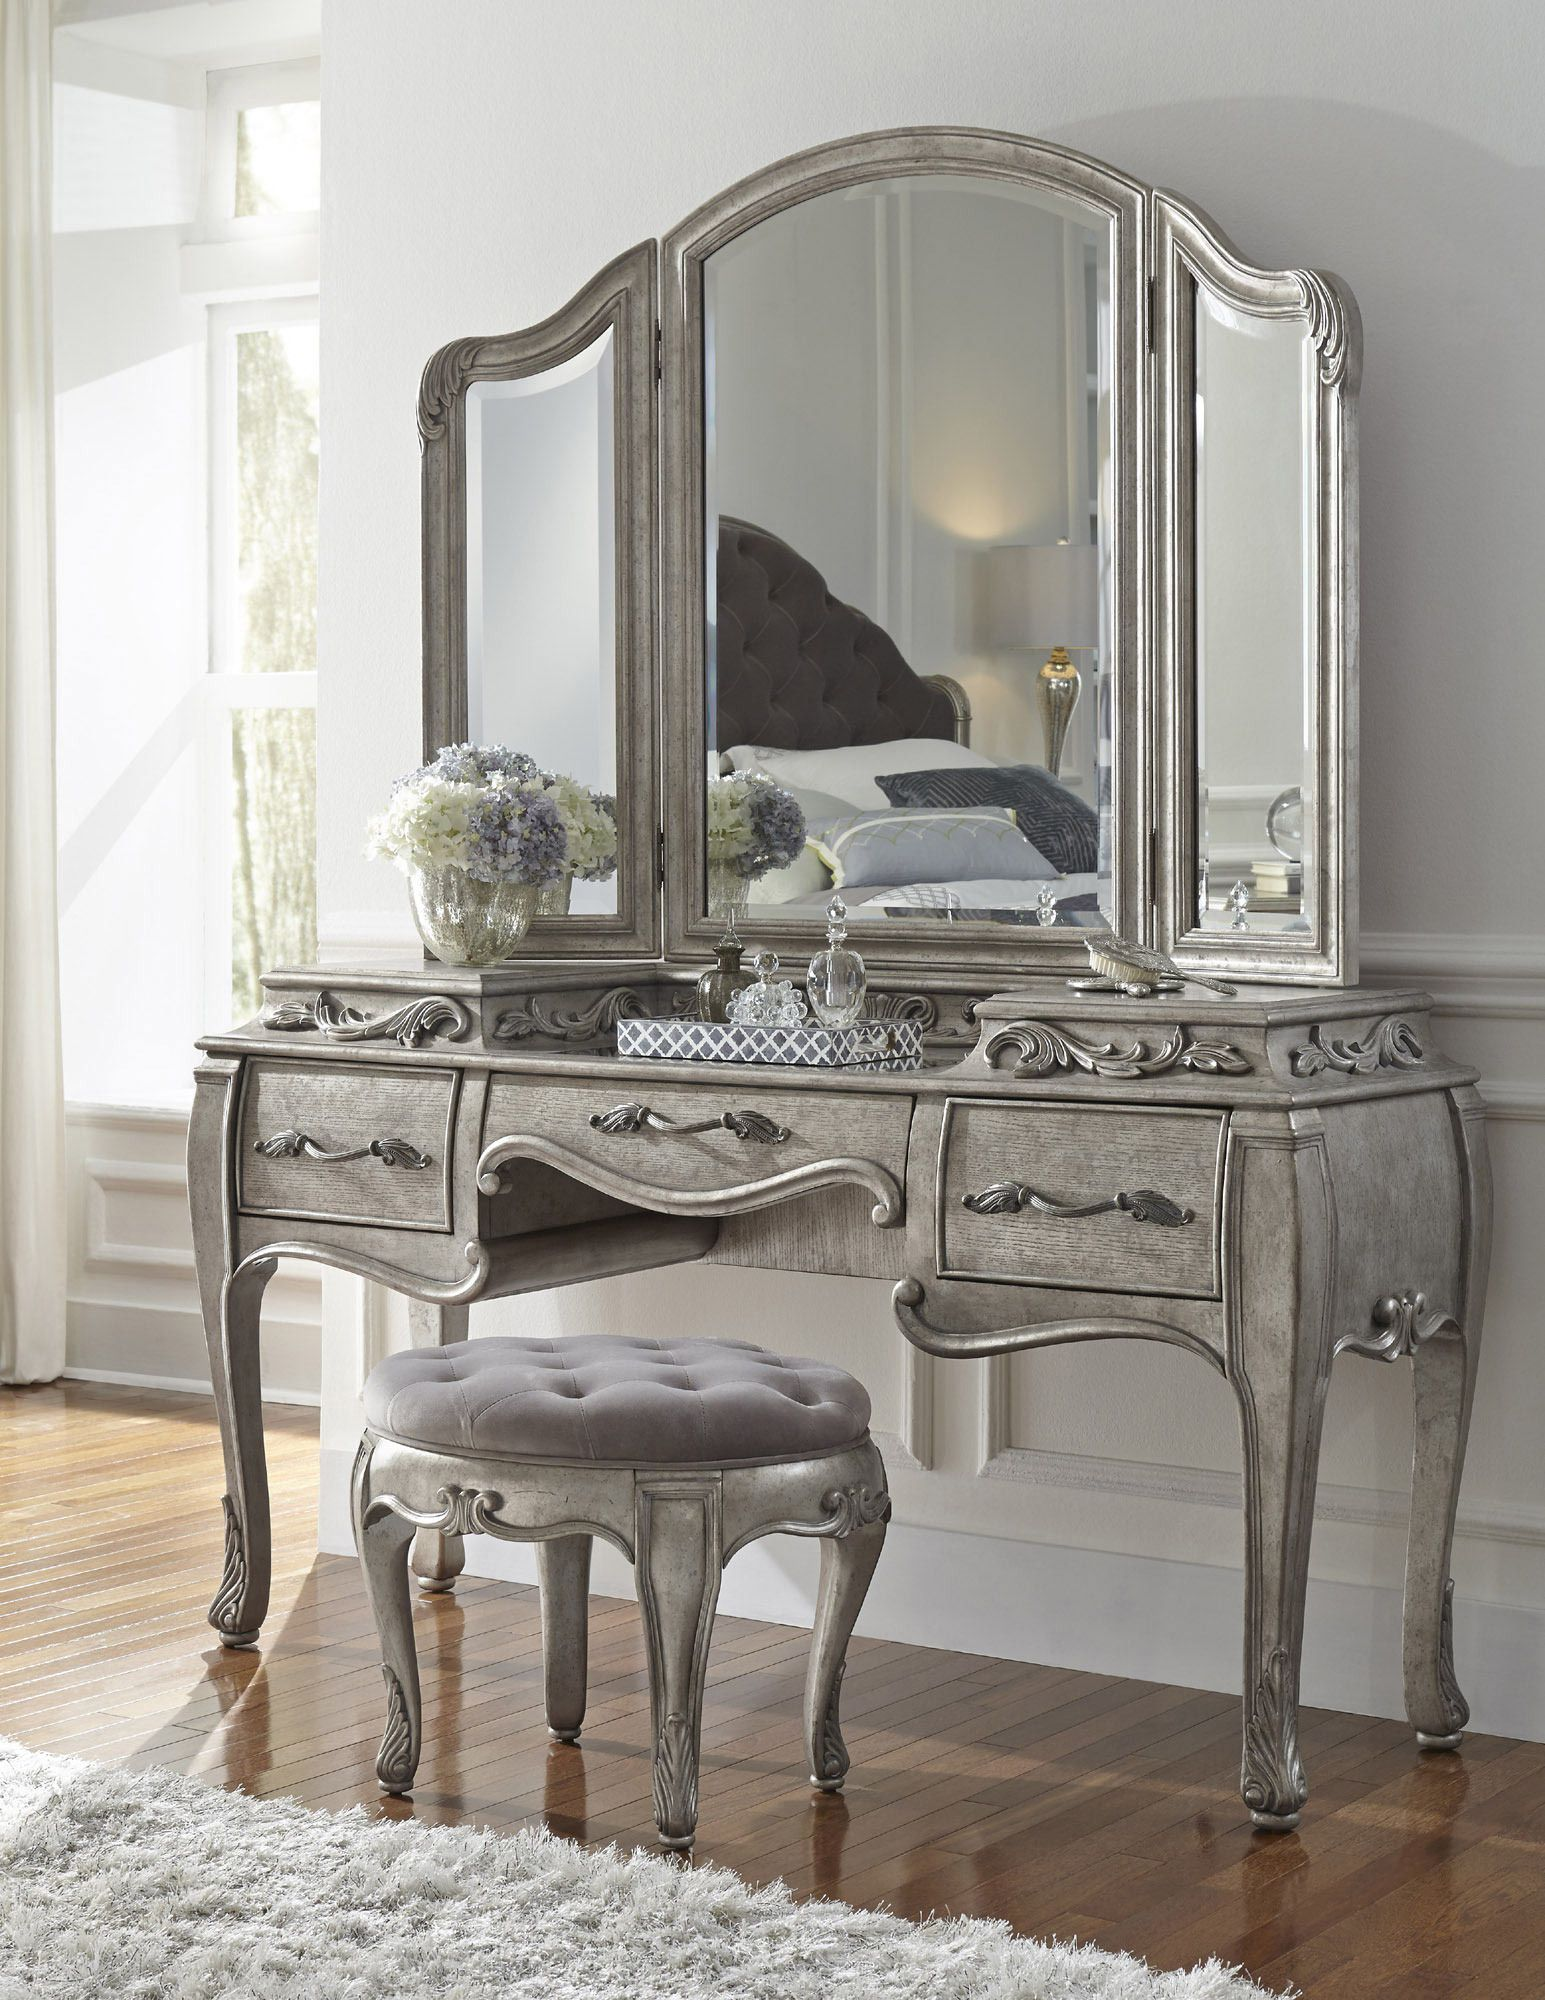 Top 100+ Vintage Bedroom Vanity With Mirror | Decor & Design Ideas ...